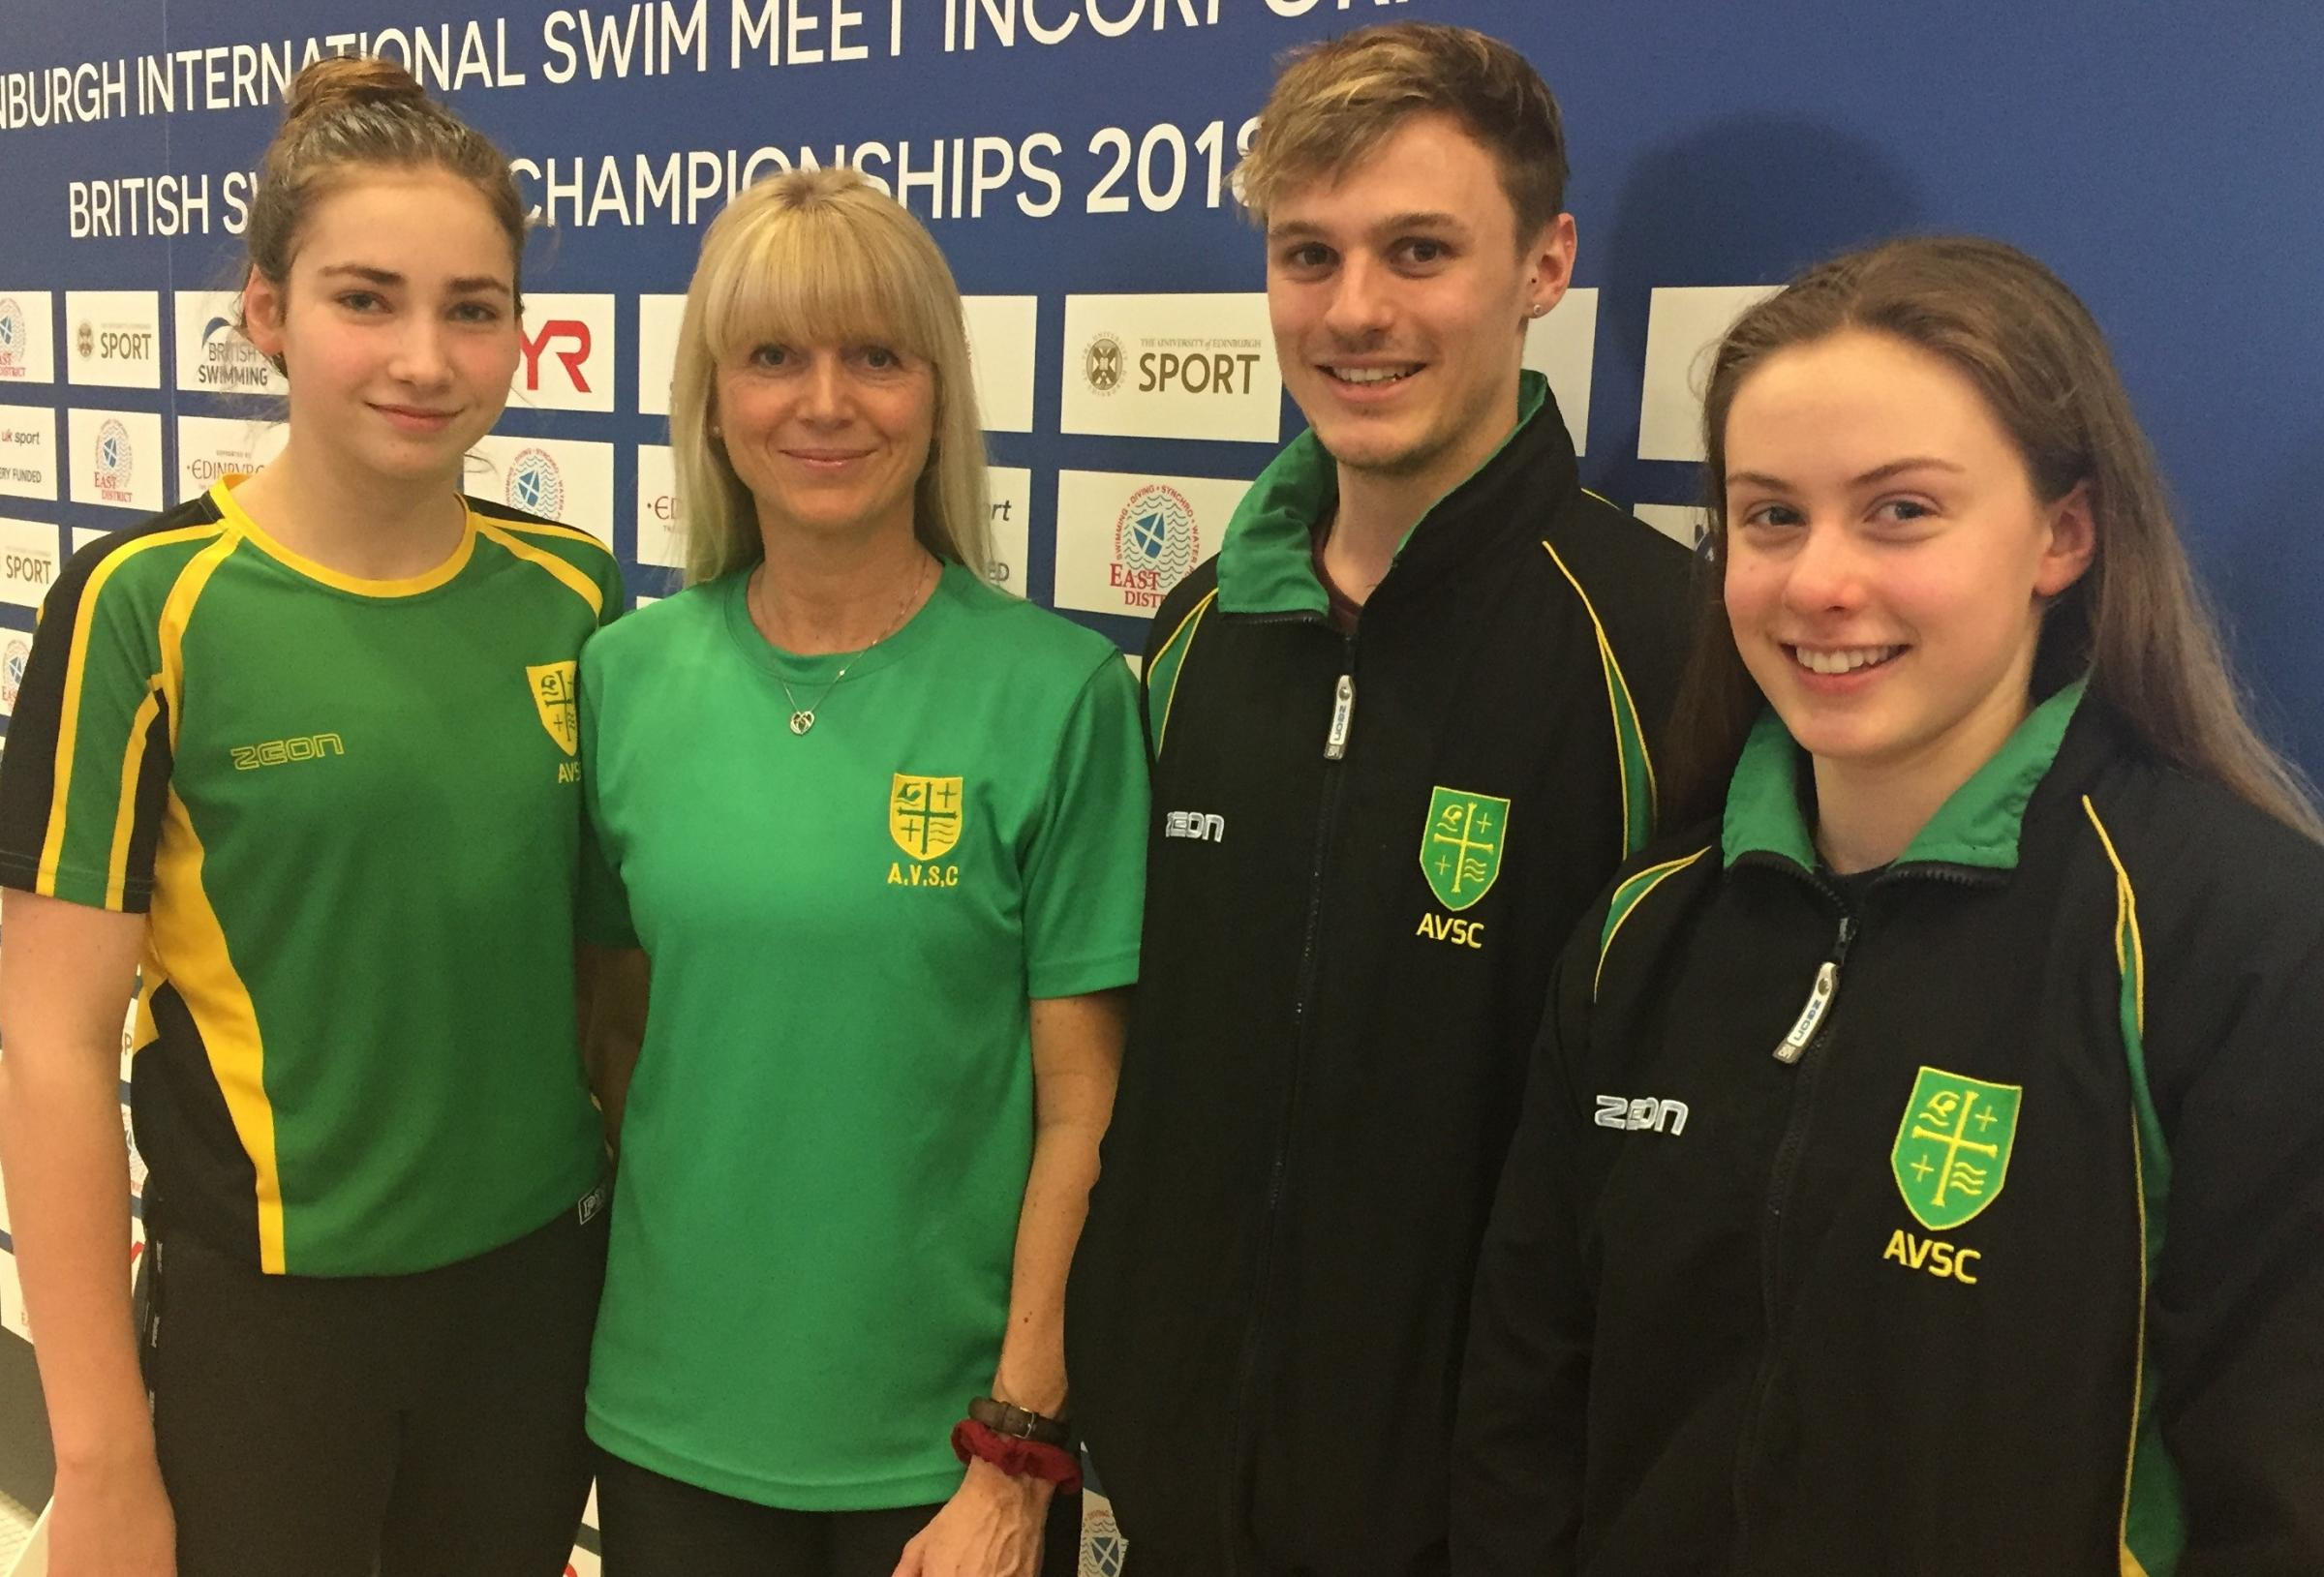 Abingdon Vale's (from left) Natalia Druett, head coach Amanda Ford, Harry James and Lottie James are all smiles in Edinburgh